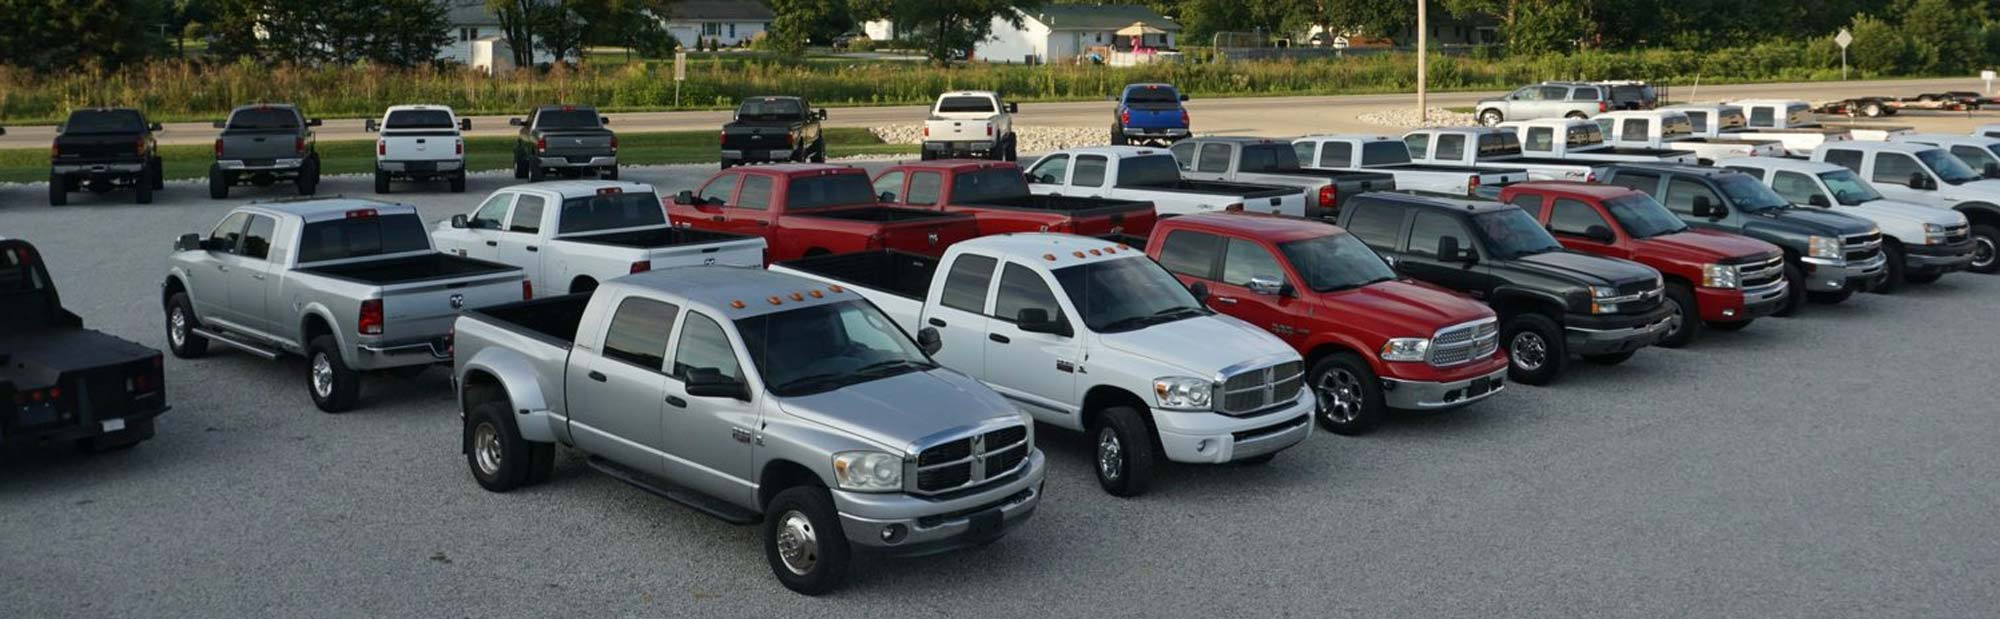 High Quality Car Inventory In Decatur Il Midwest Diesel Trucks